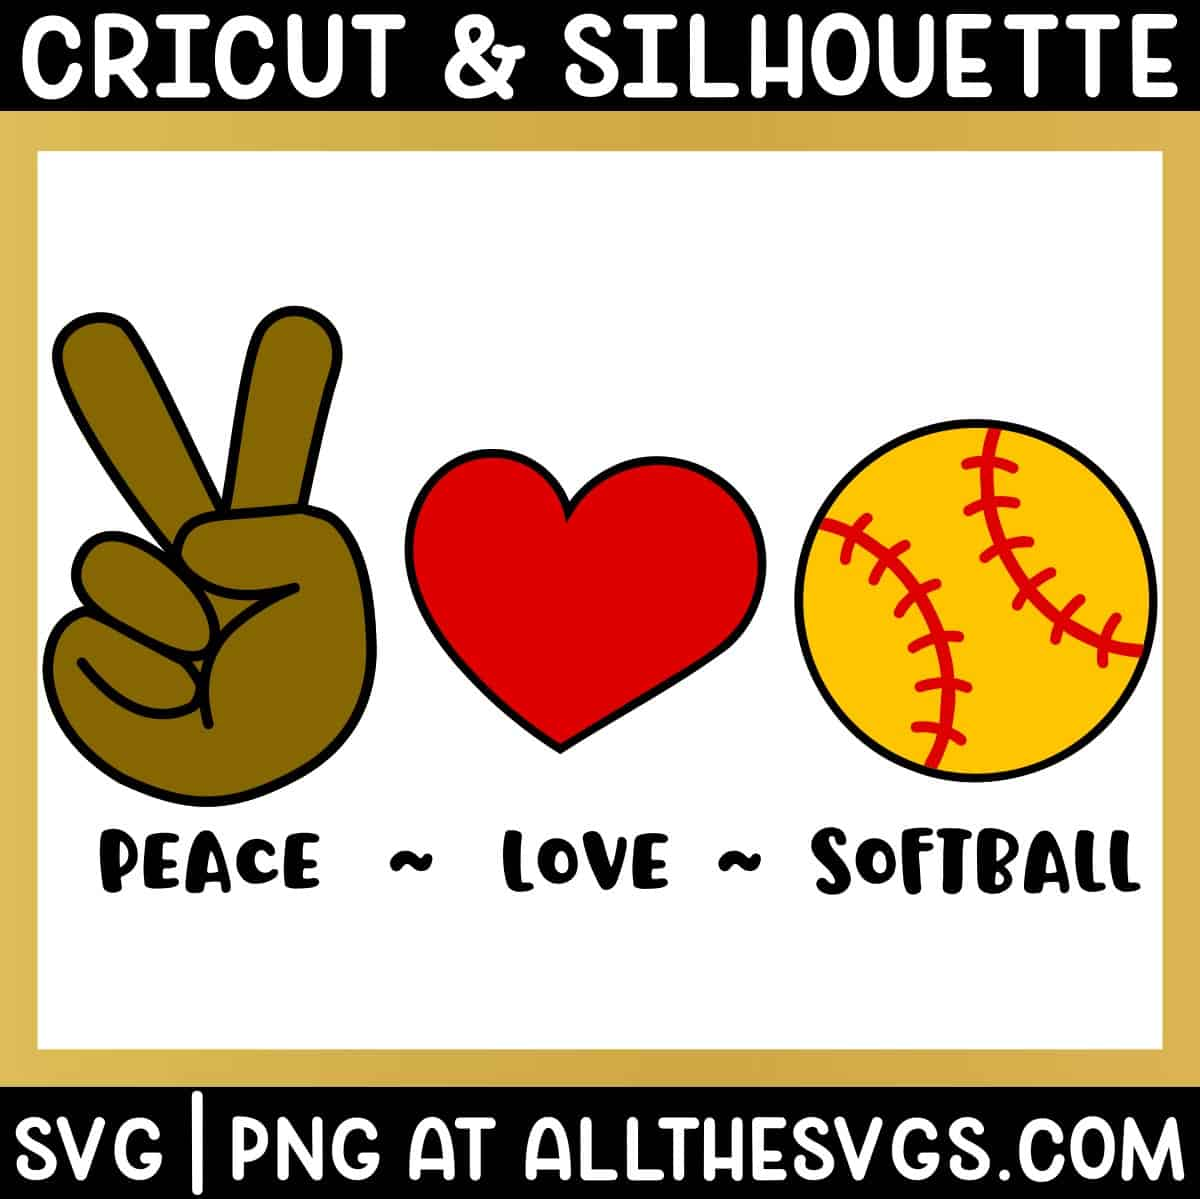 free peace, love, softball svg png bundle with hand sign, heart, ball.